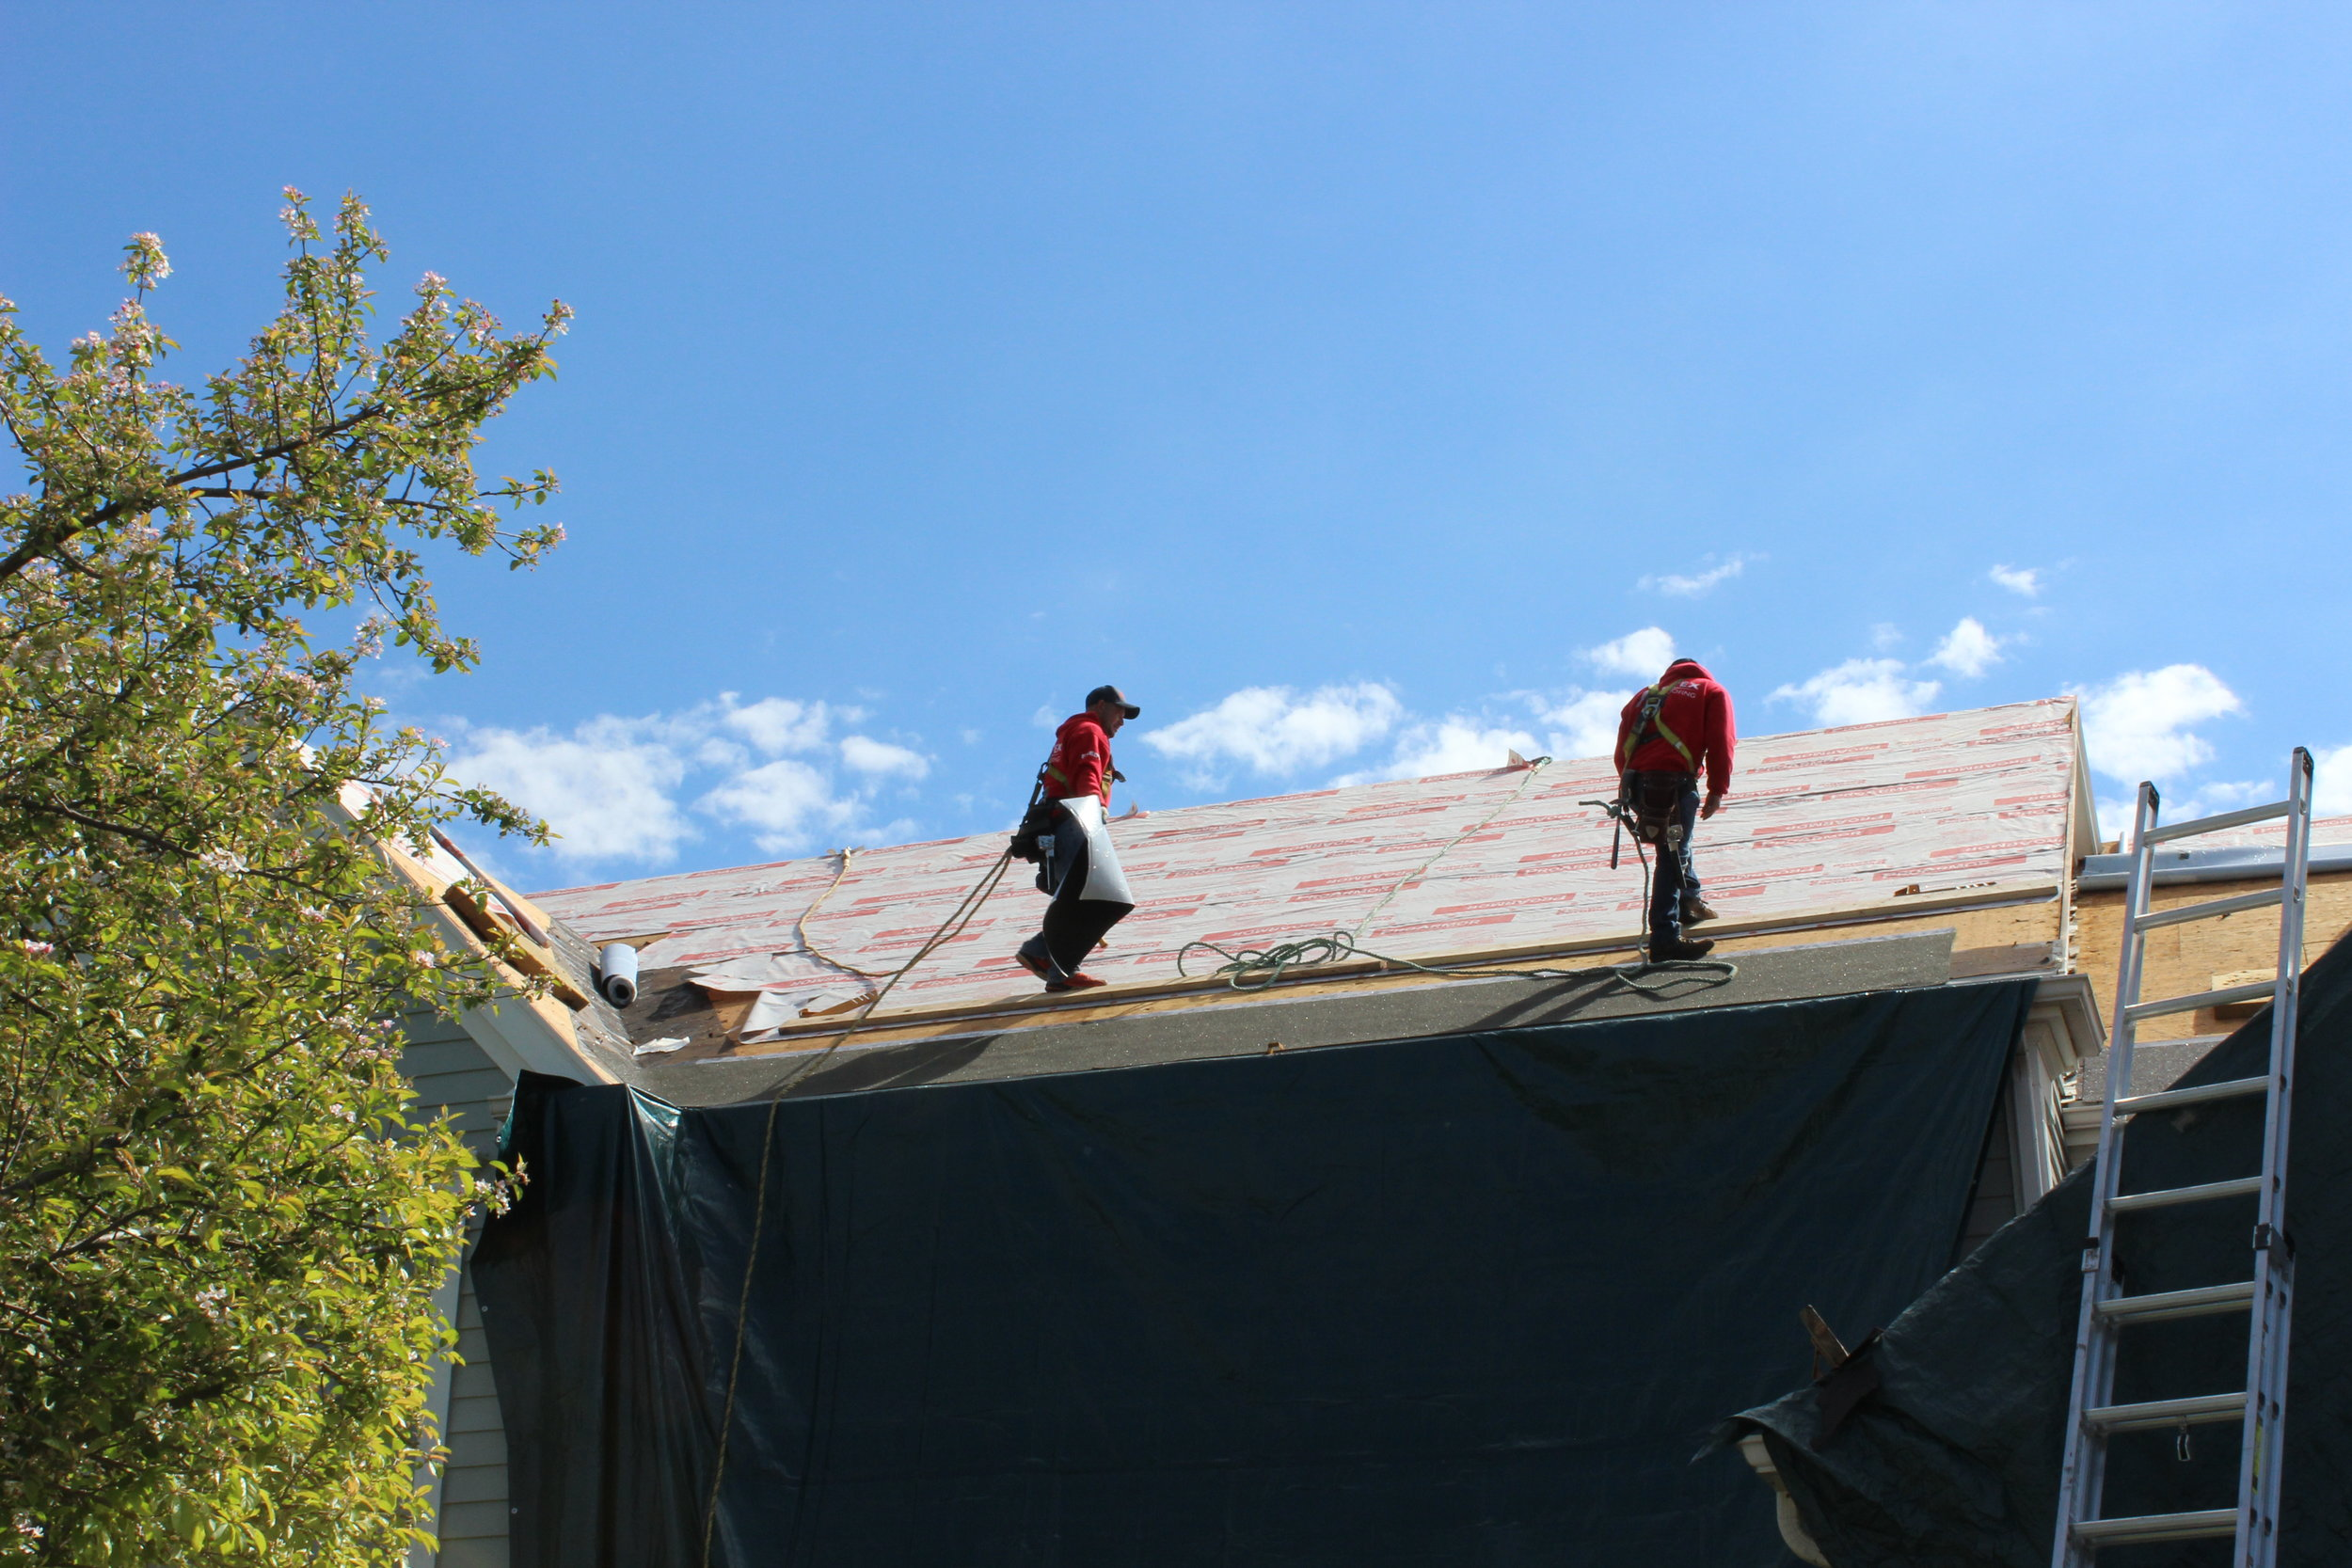 Artex Roofing Tinley Park IL New Roof Installationnbsp